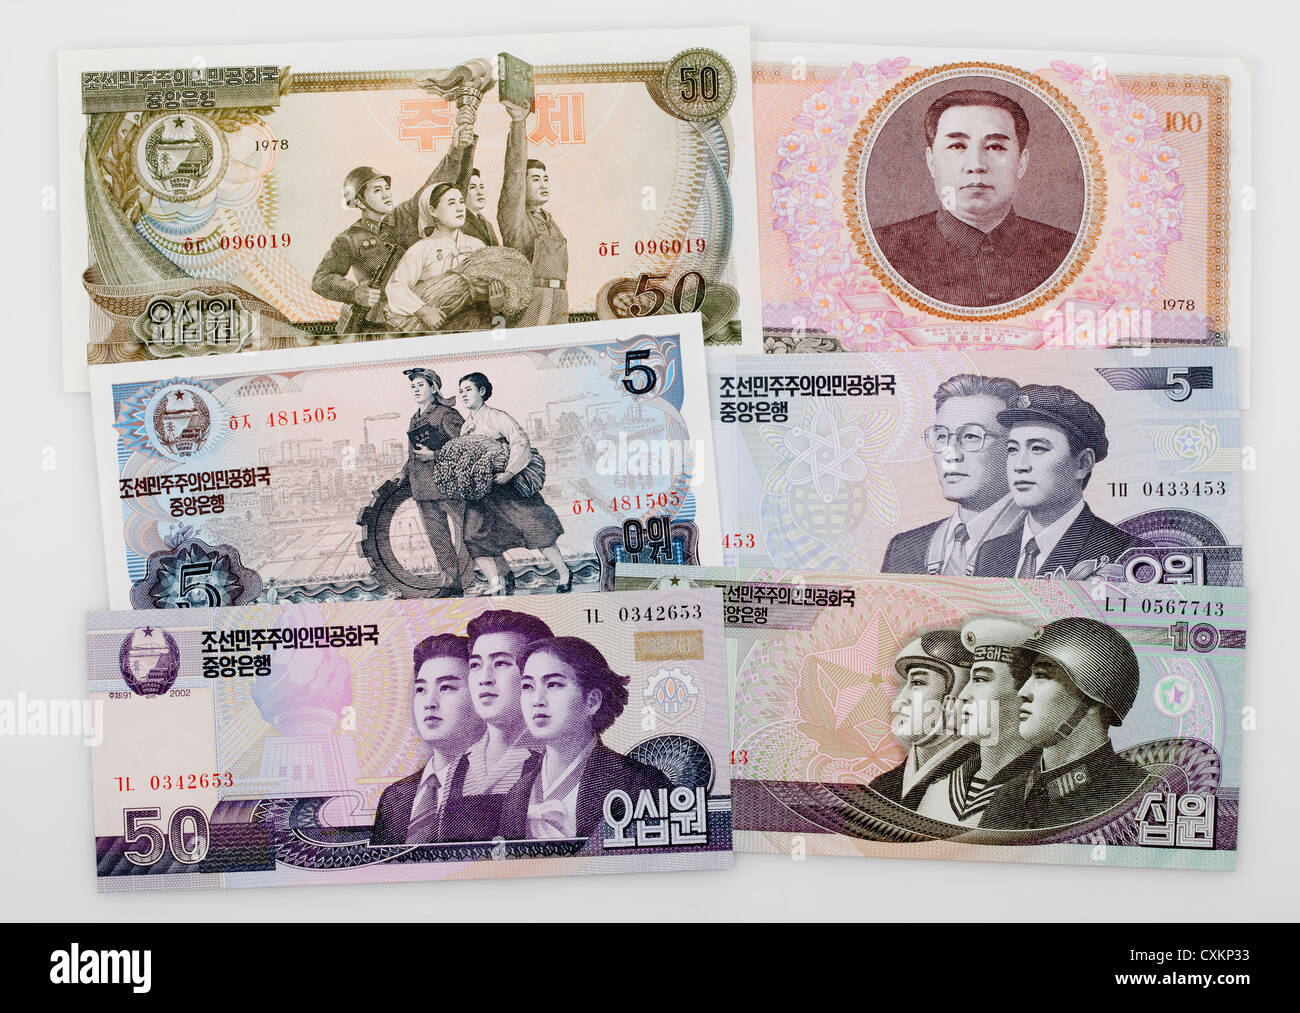 historic bank notes from North Korea - Stock Image